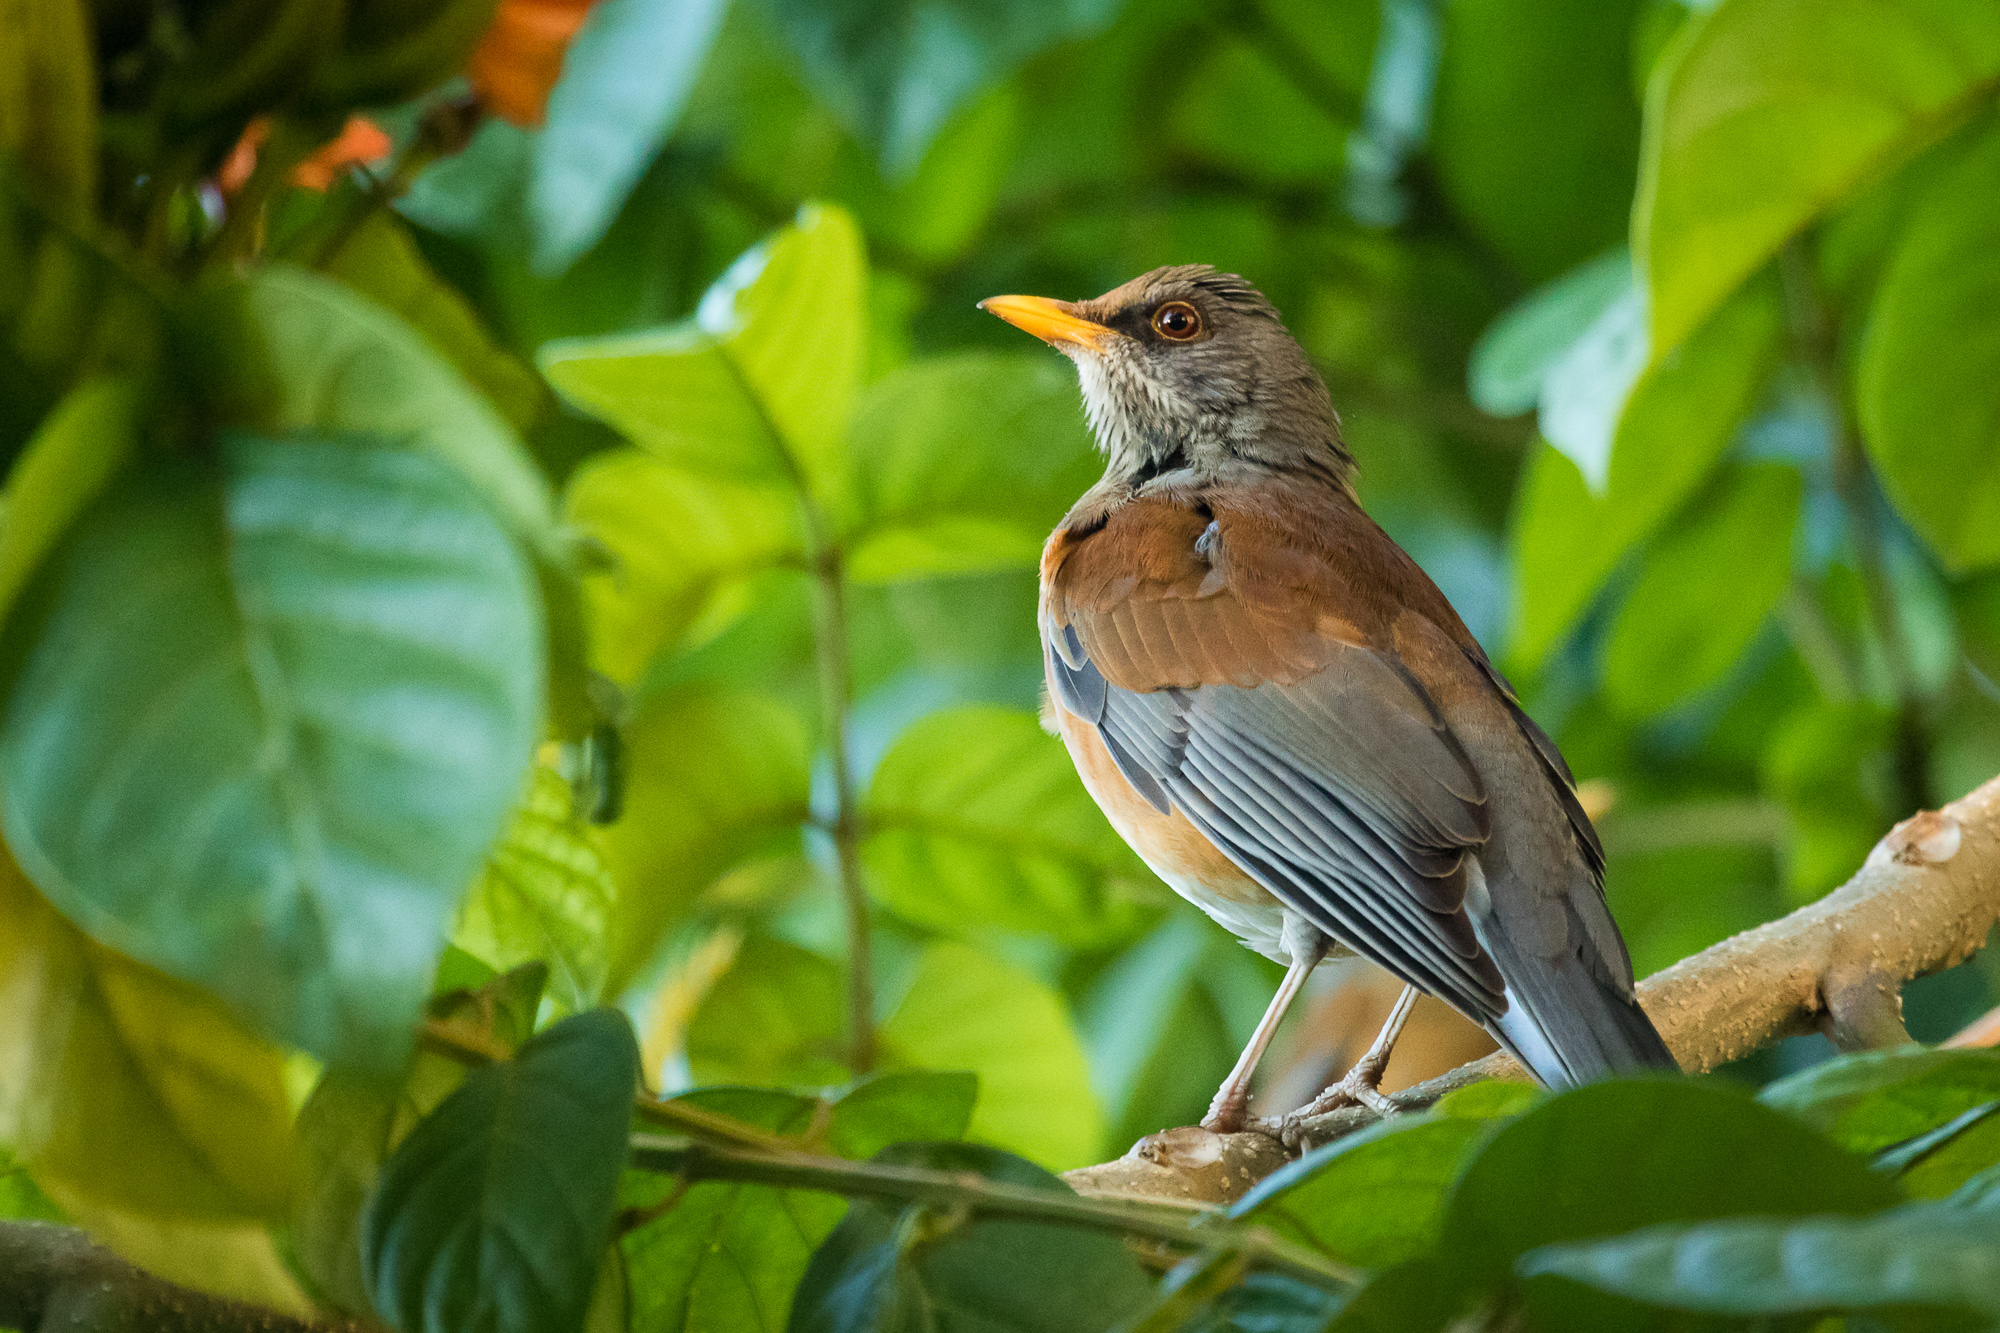 A rufous-backed robin perches on the branch of a green tree, Puerto Vallarta, Mexico